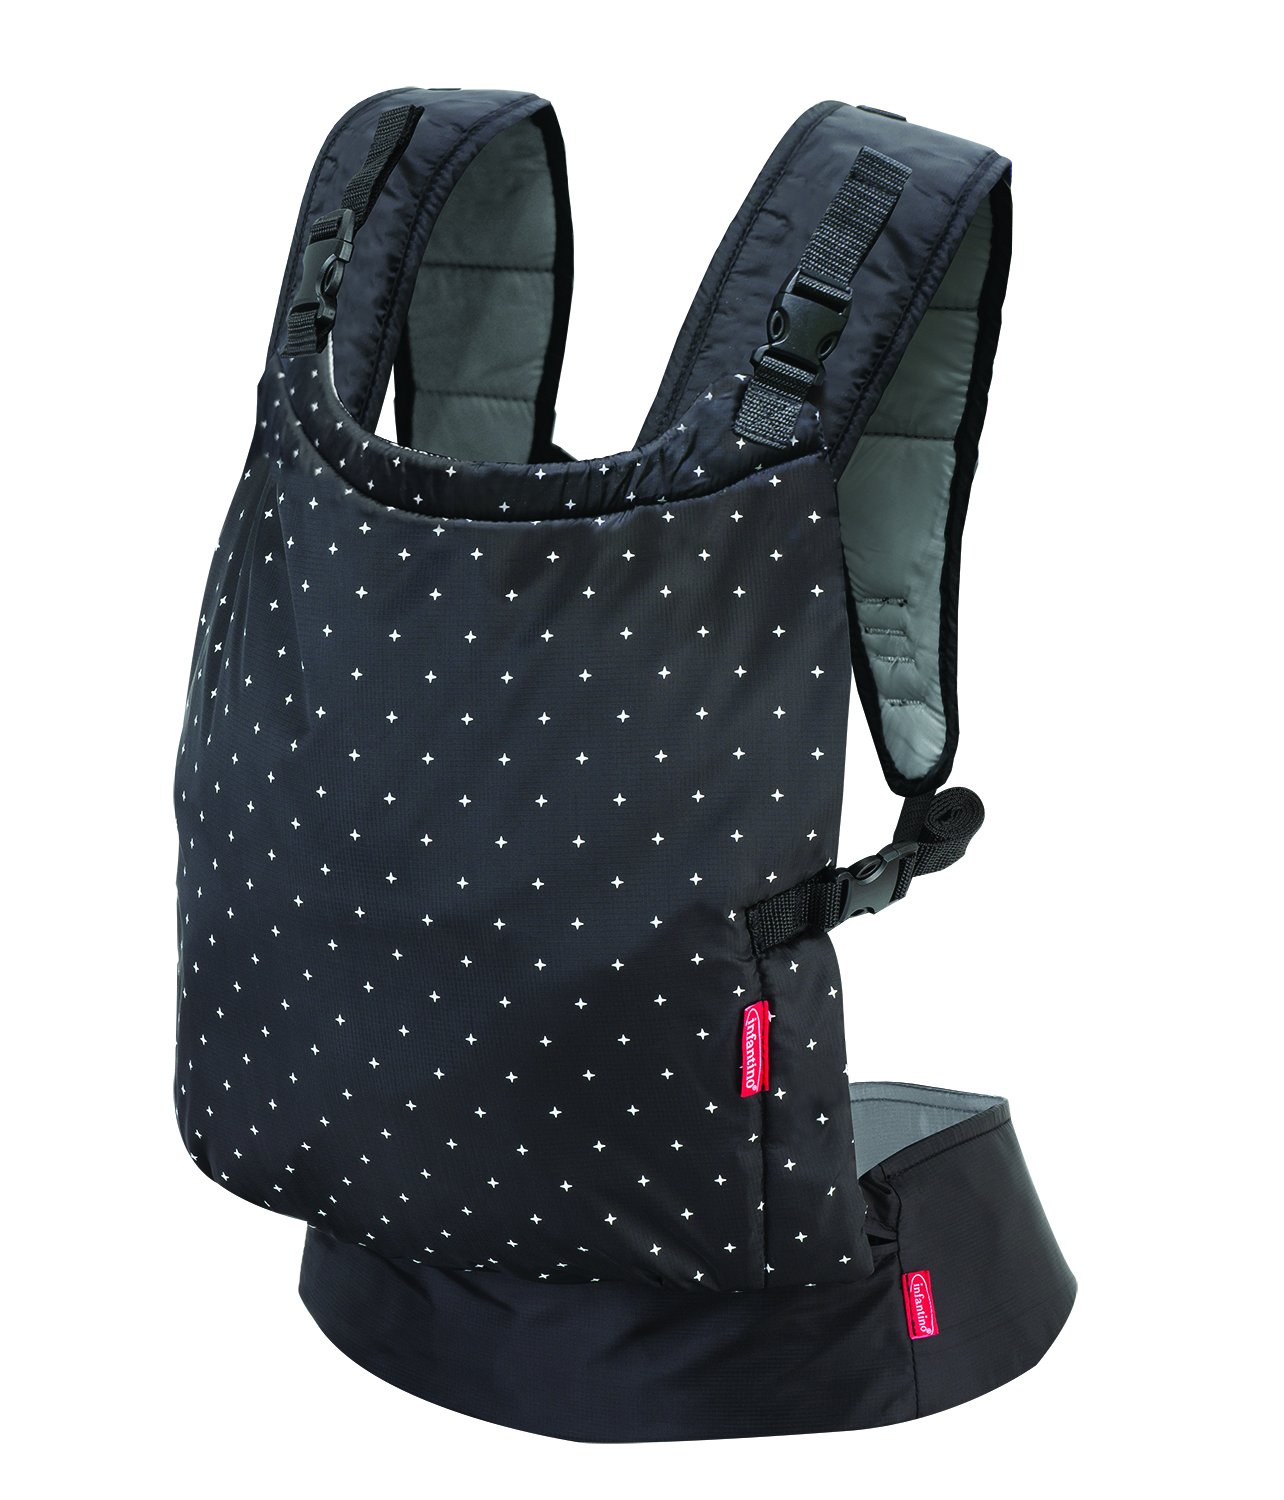 Infantino Zip Ergonomic Baby Travel Carrier, Black Infantino Fully safety tested Travel carrier that unfolds to for safe secure baby wearing Up to 18 kg 1